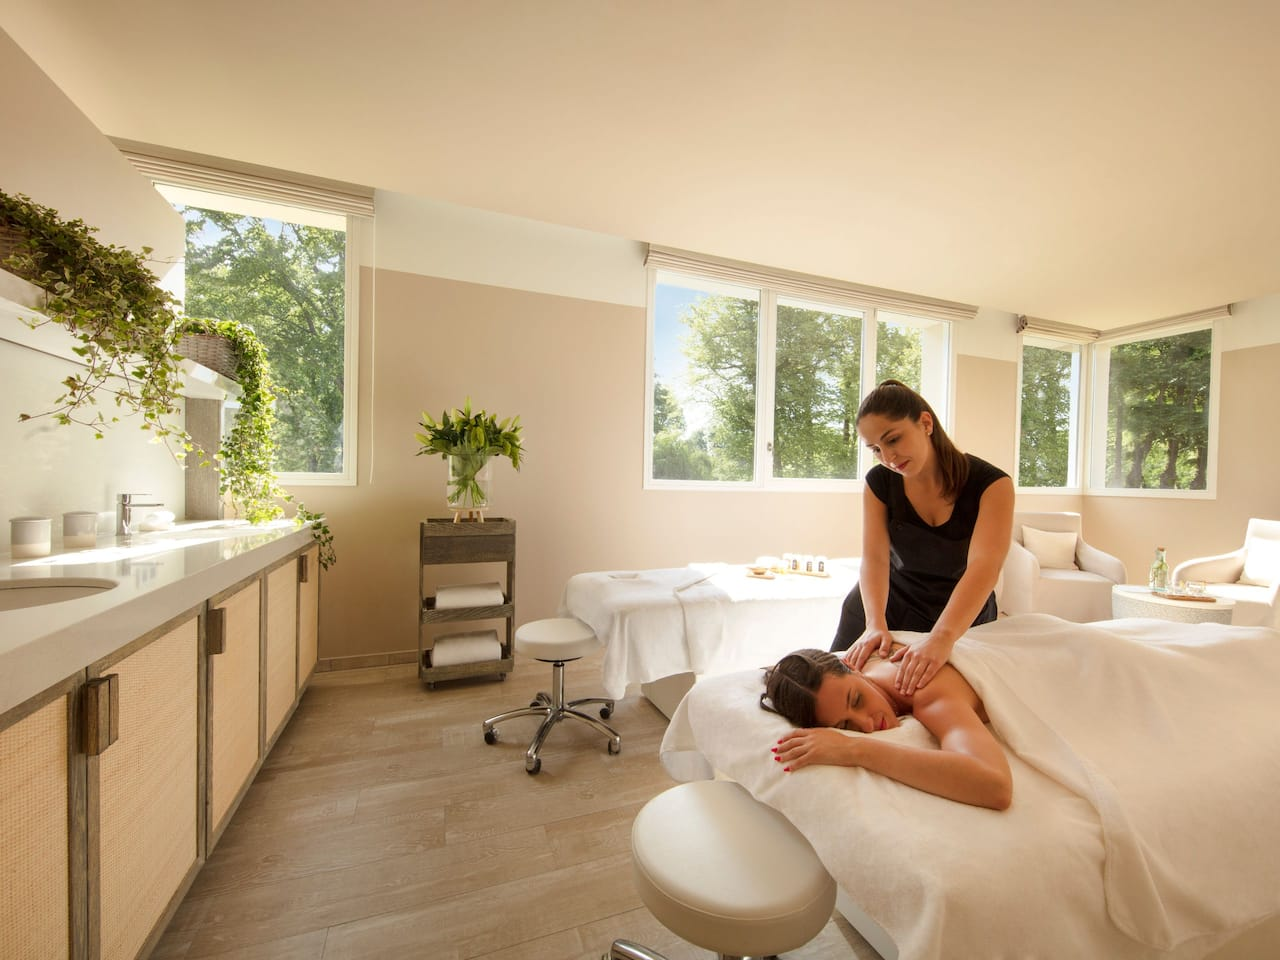 Le Cottage Spa & Wellness